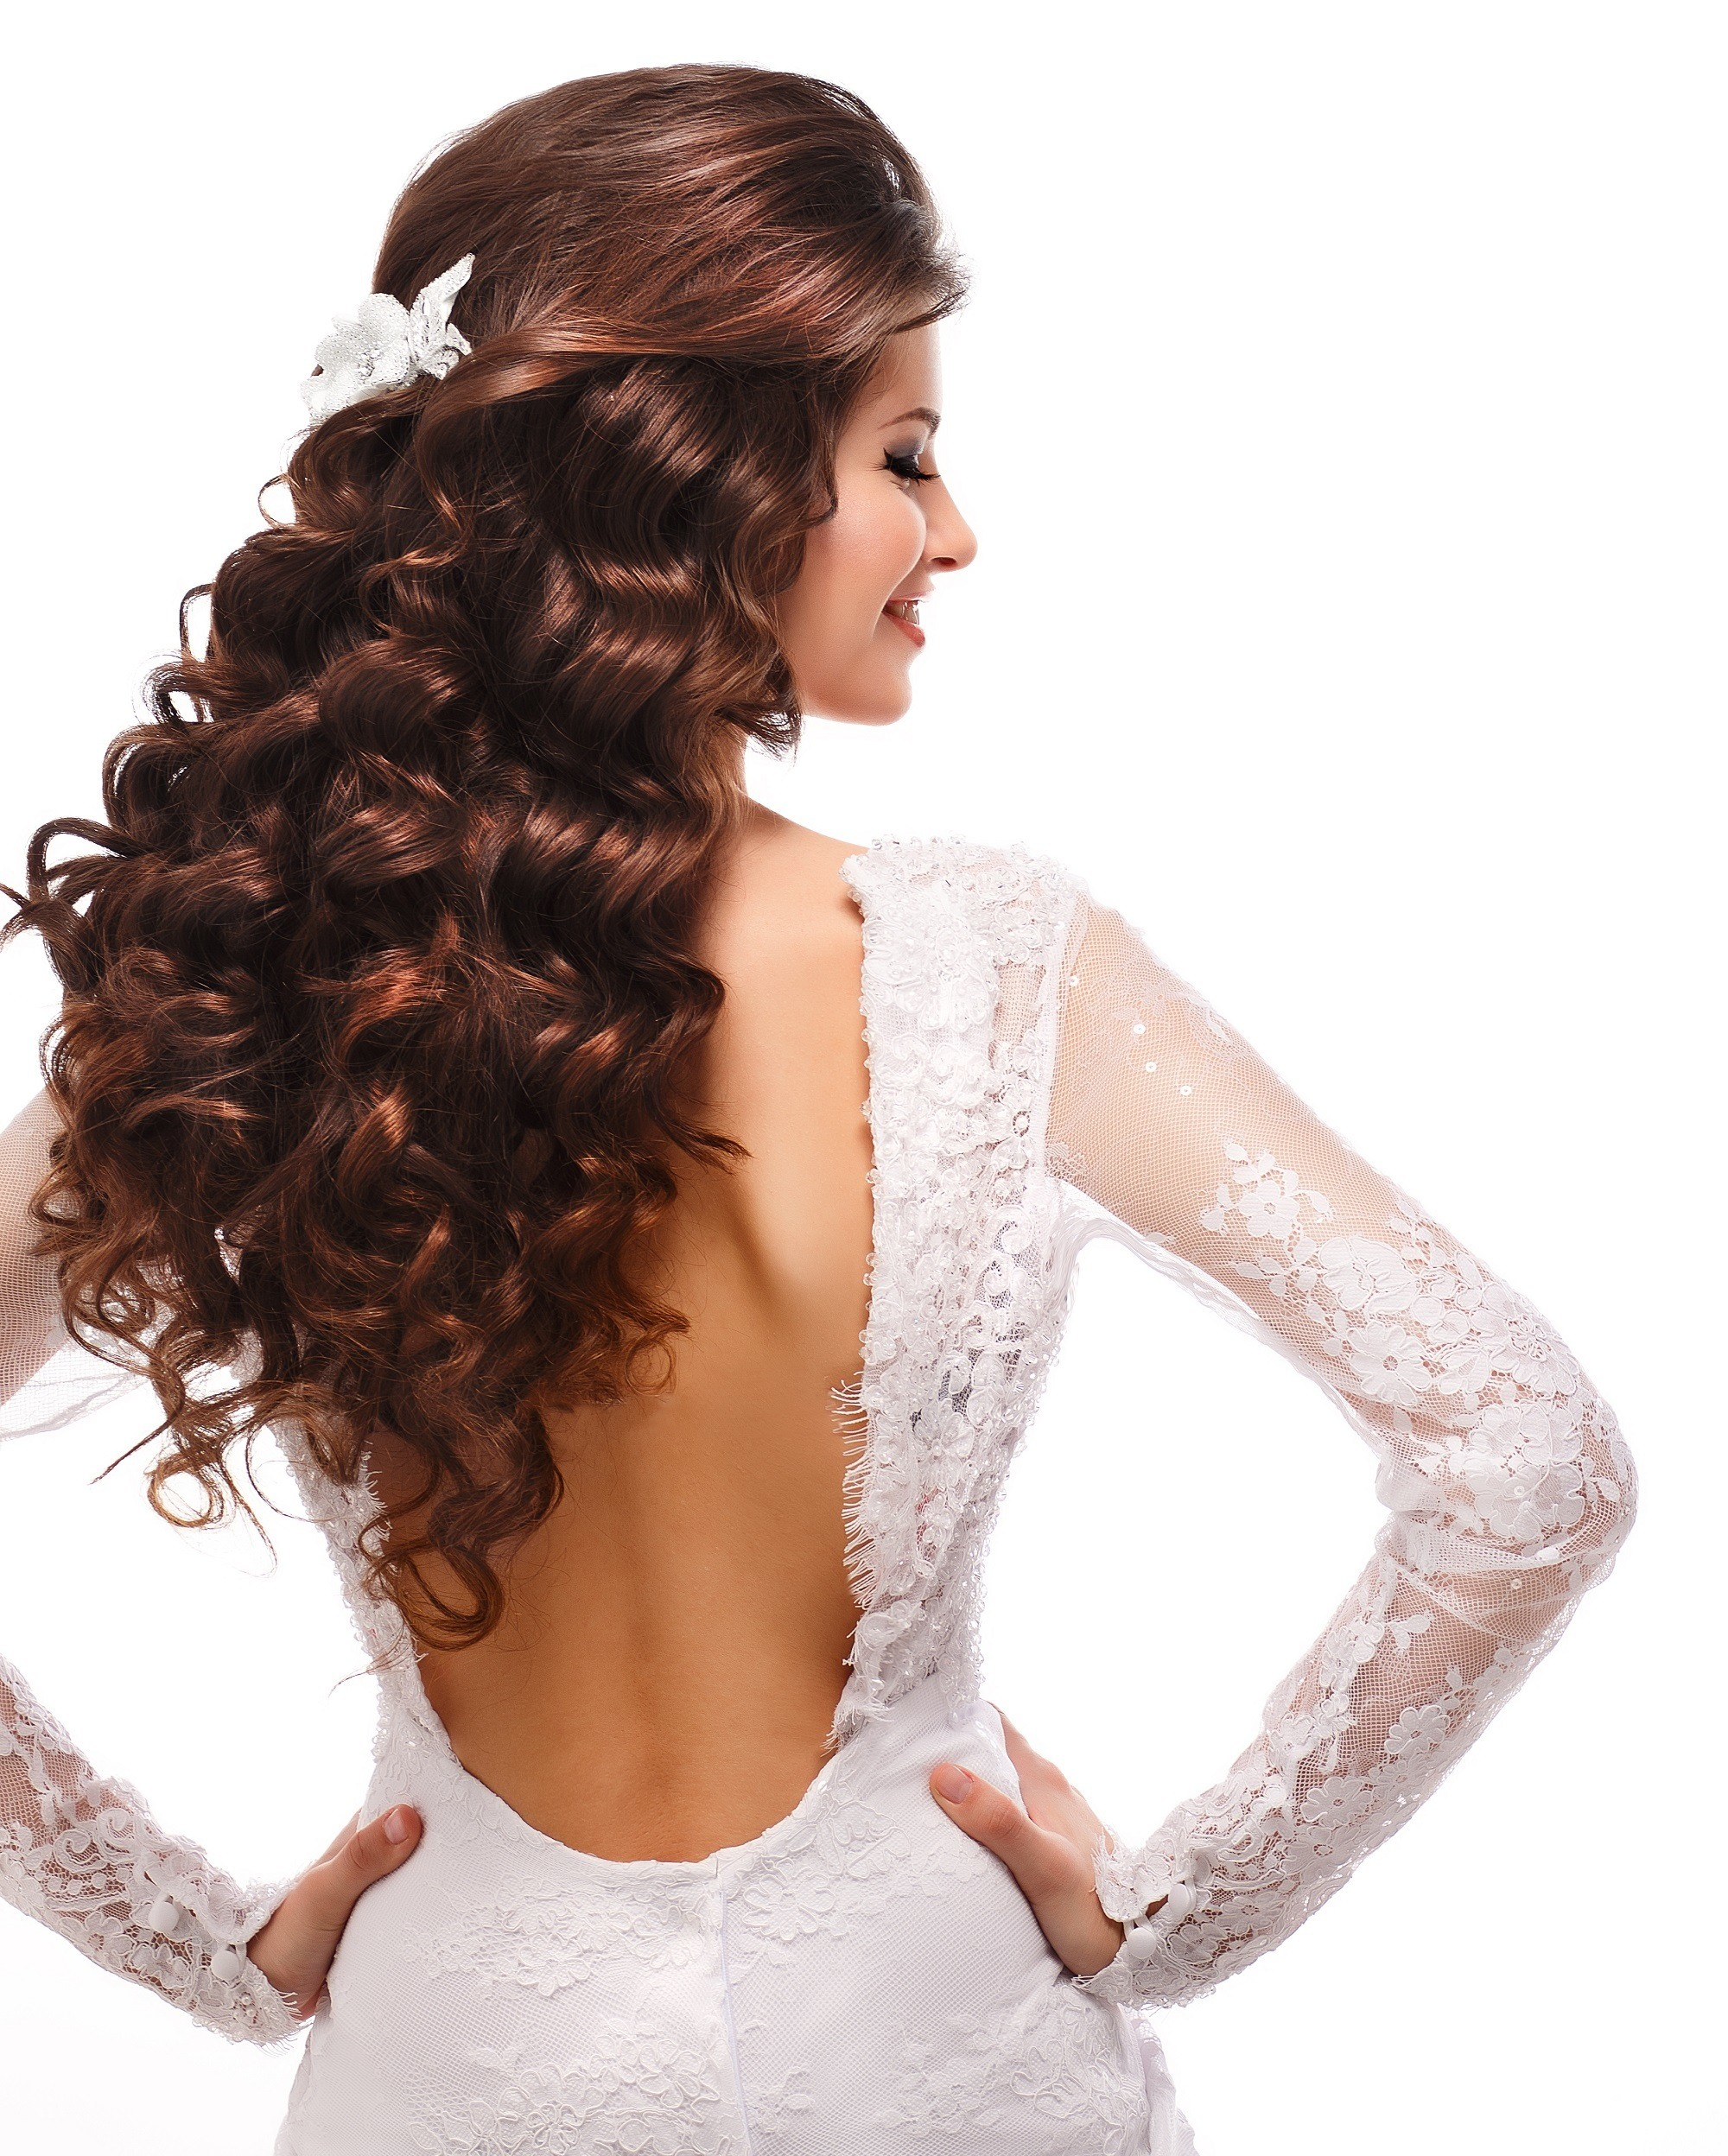 Wedding Hairstyles Curly Hair: Curly Wedding Hairstyles For Kulot Brides